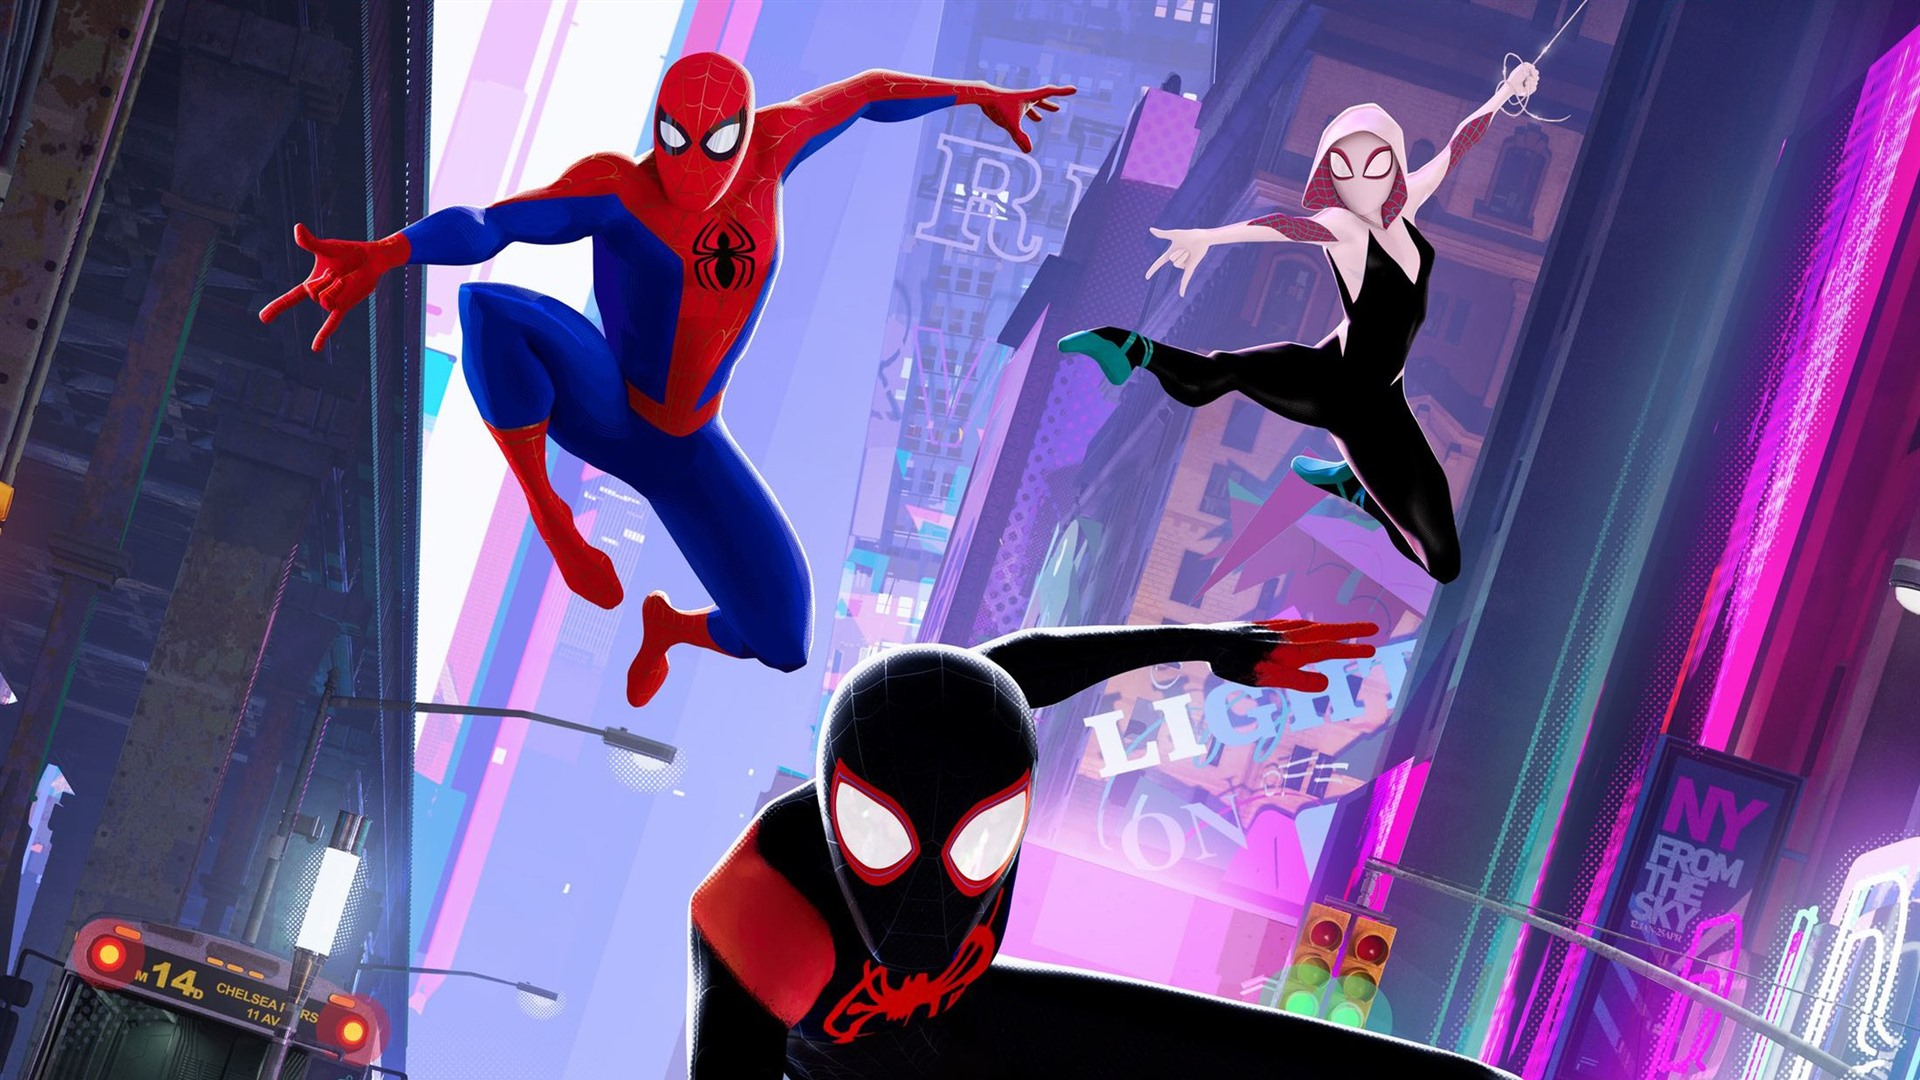 https://s2.best-wallpaper.net/wallpaper/1920x1080/1812/Spider-Man-Into-the-Spider-Verse-anime-movie-2018_1920x1080.jpg